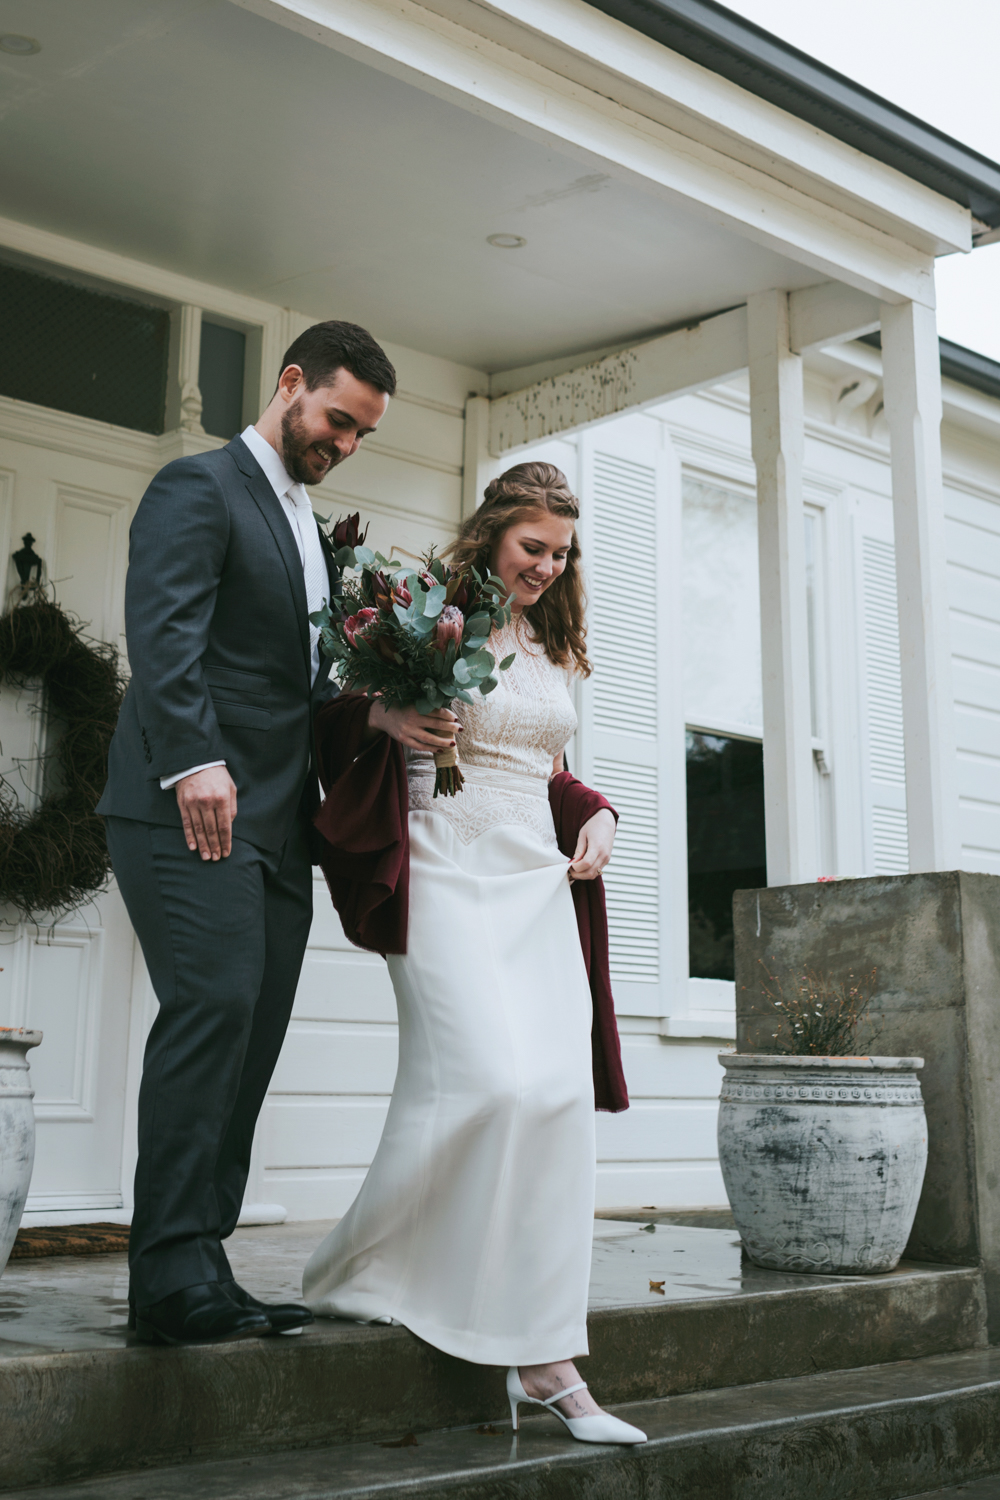 Bride and groom walk down stairs after marrying.